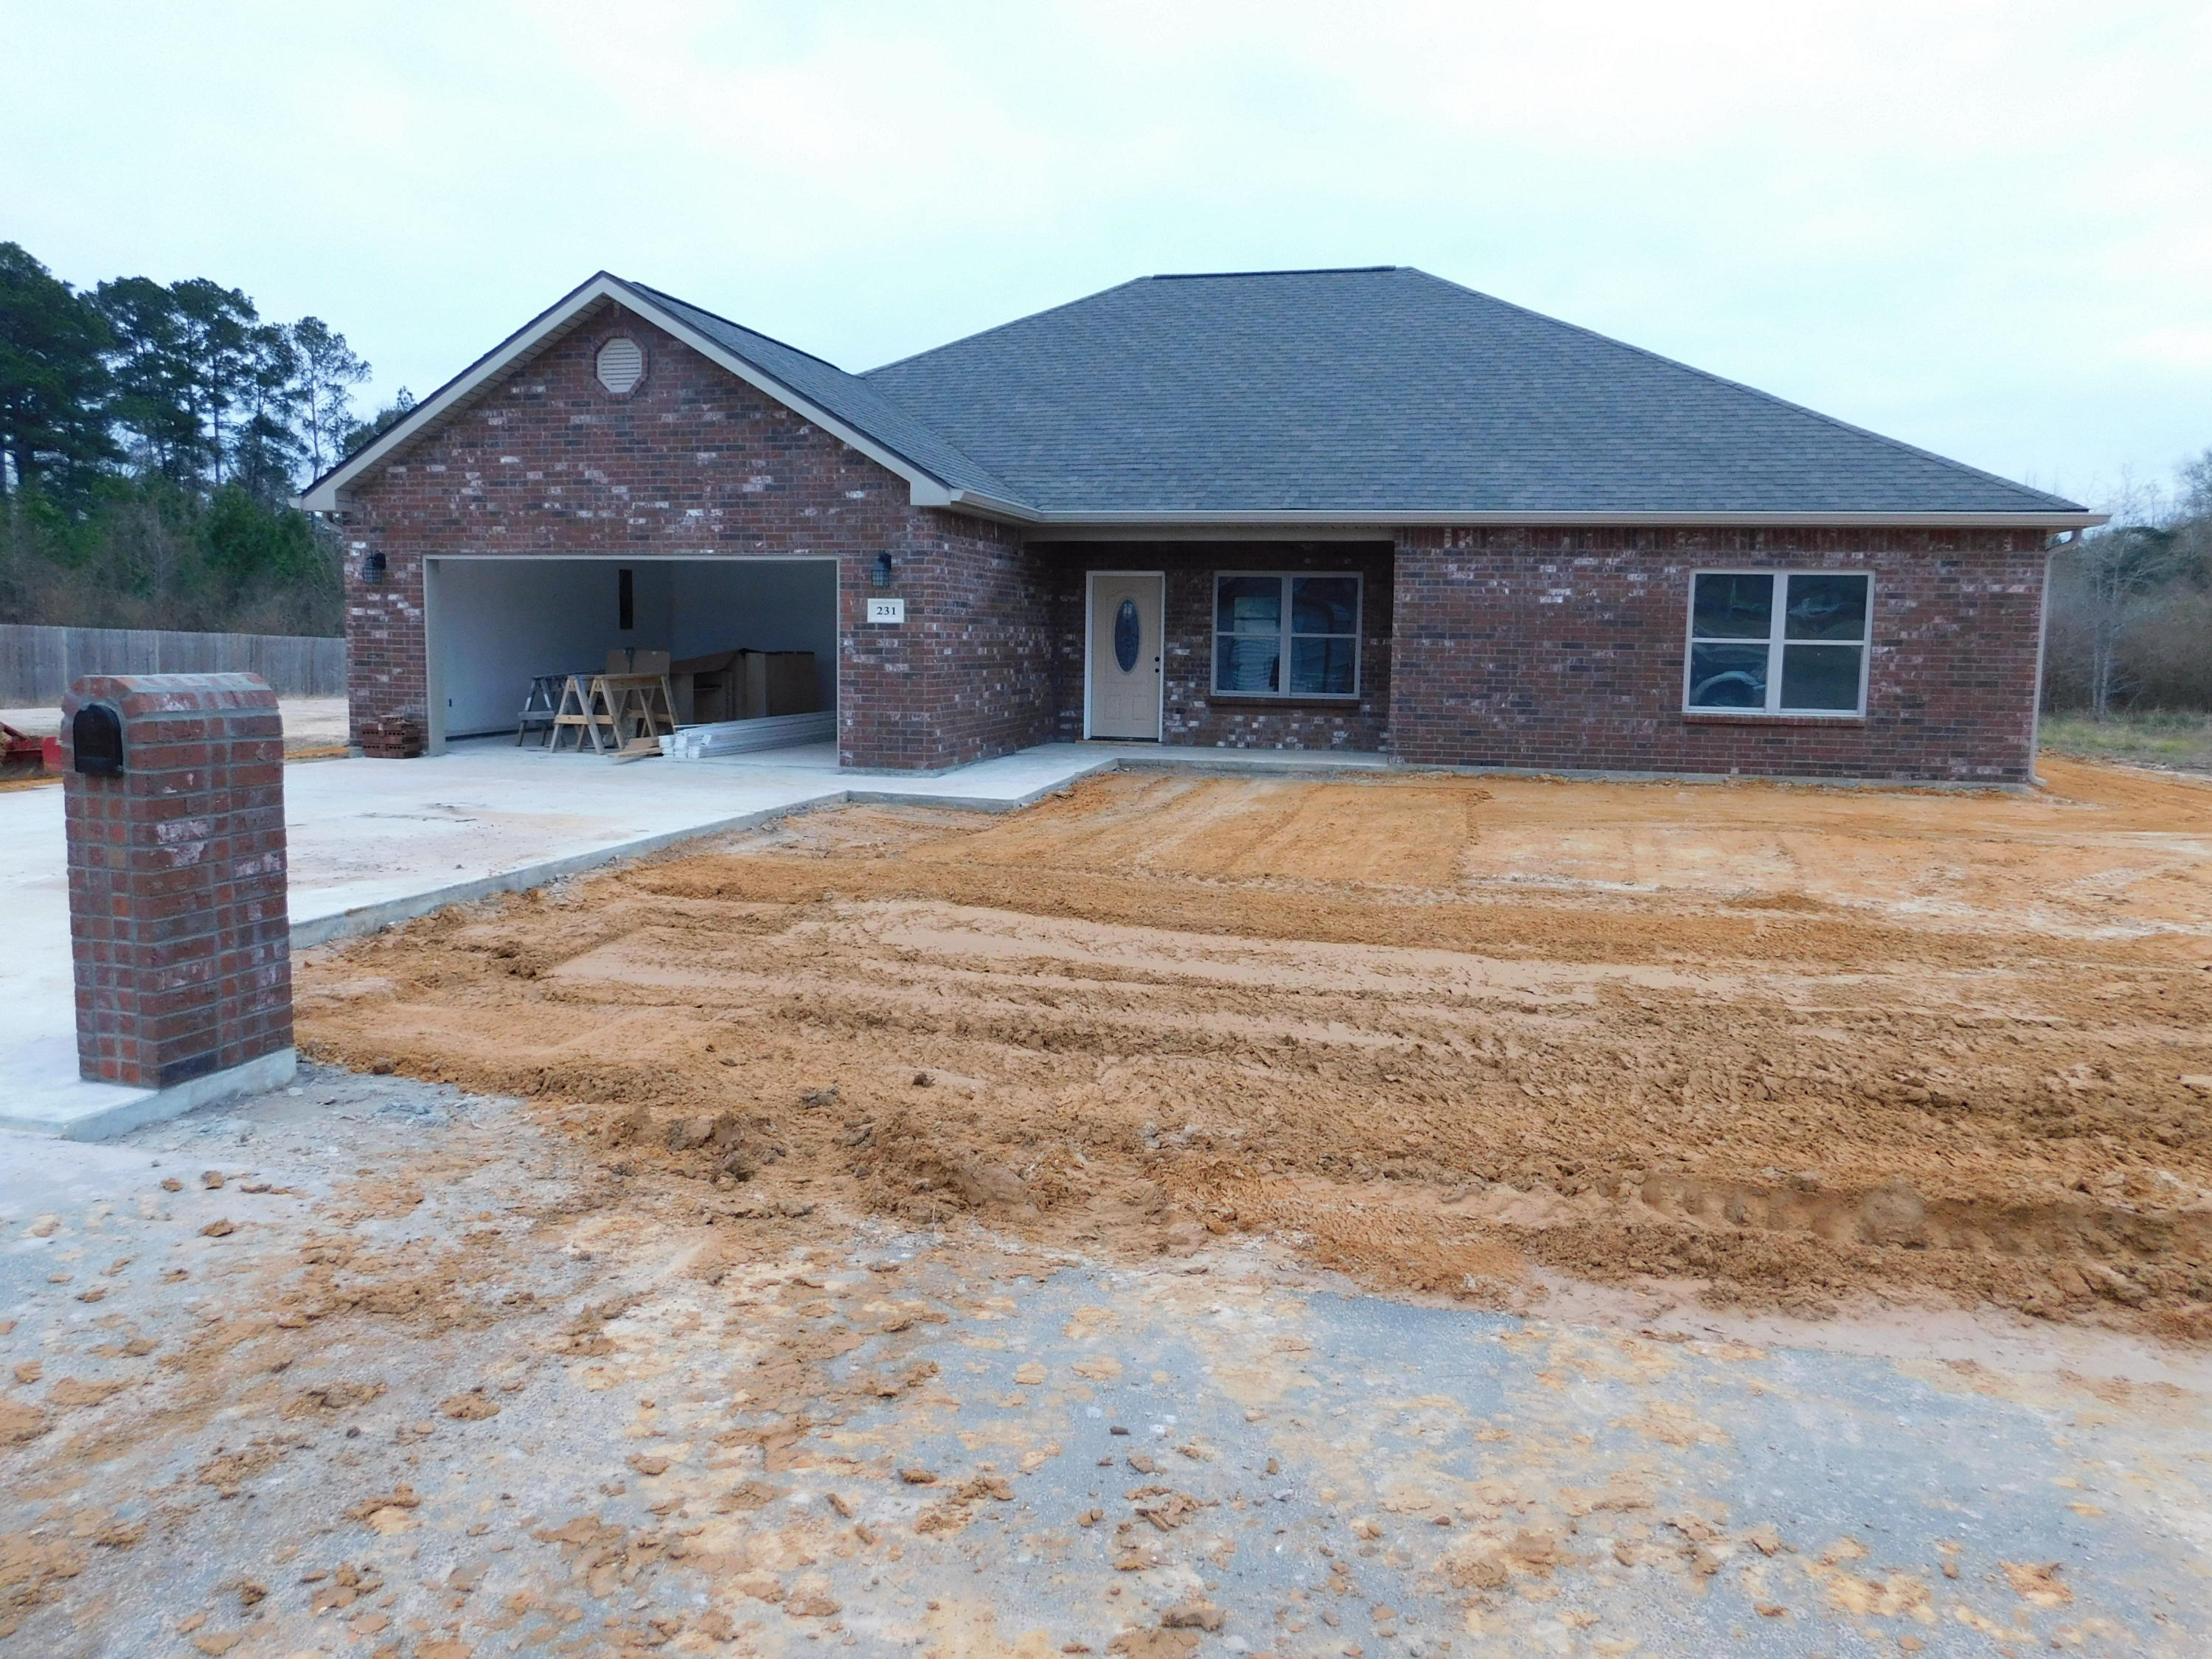 DeRidder home for sale, 231 Barbara Dr., DeRidder LA - $233,000